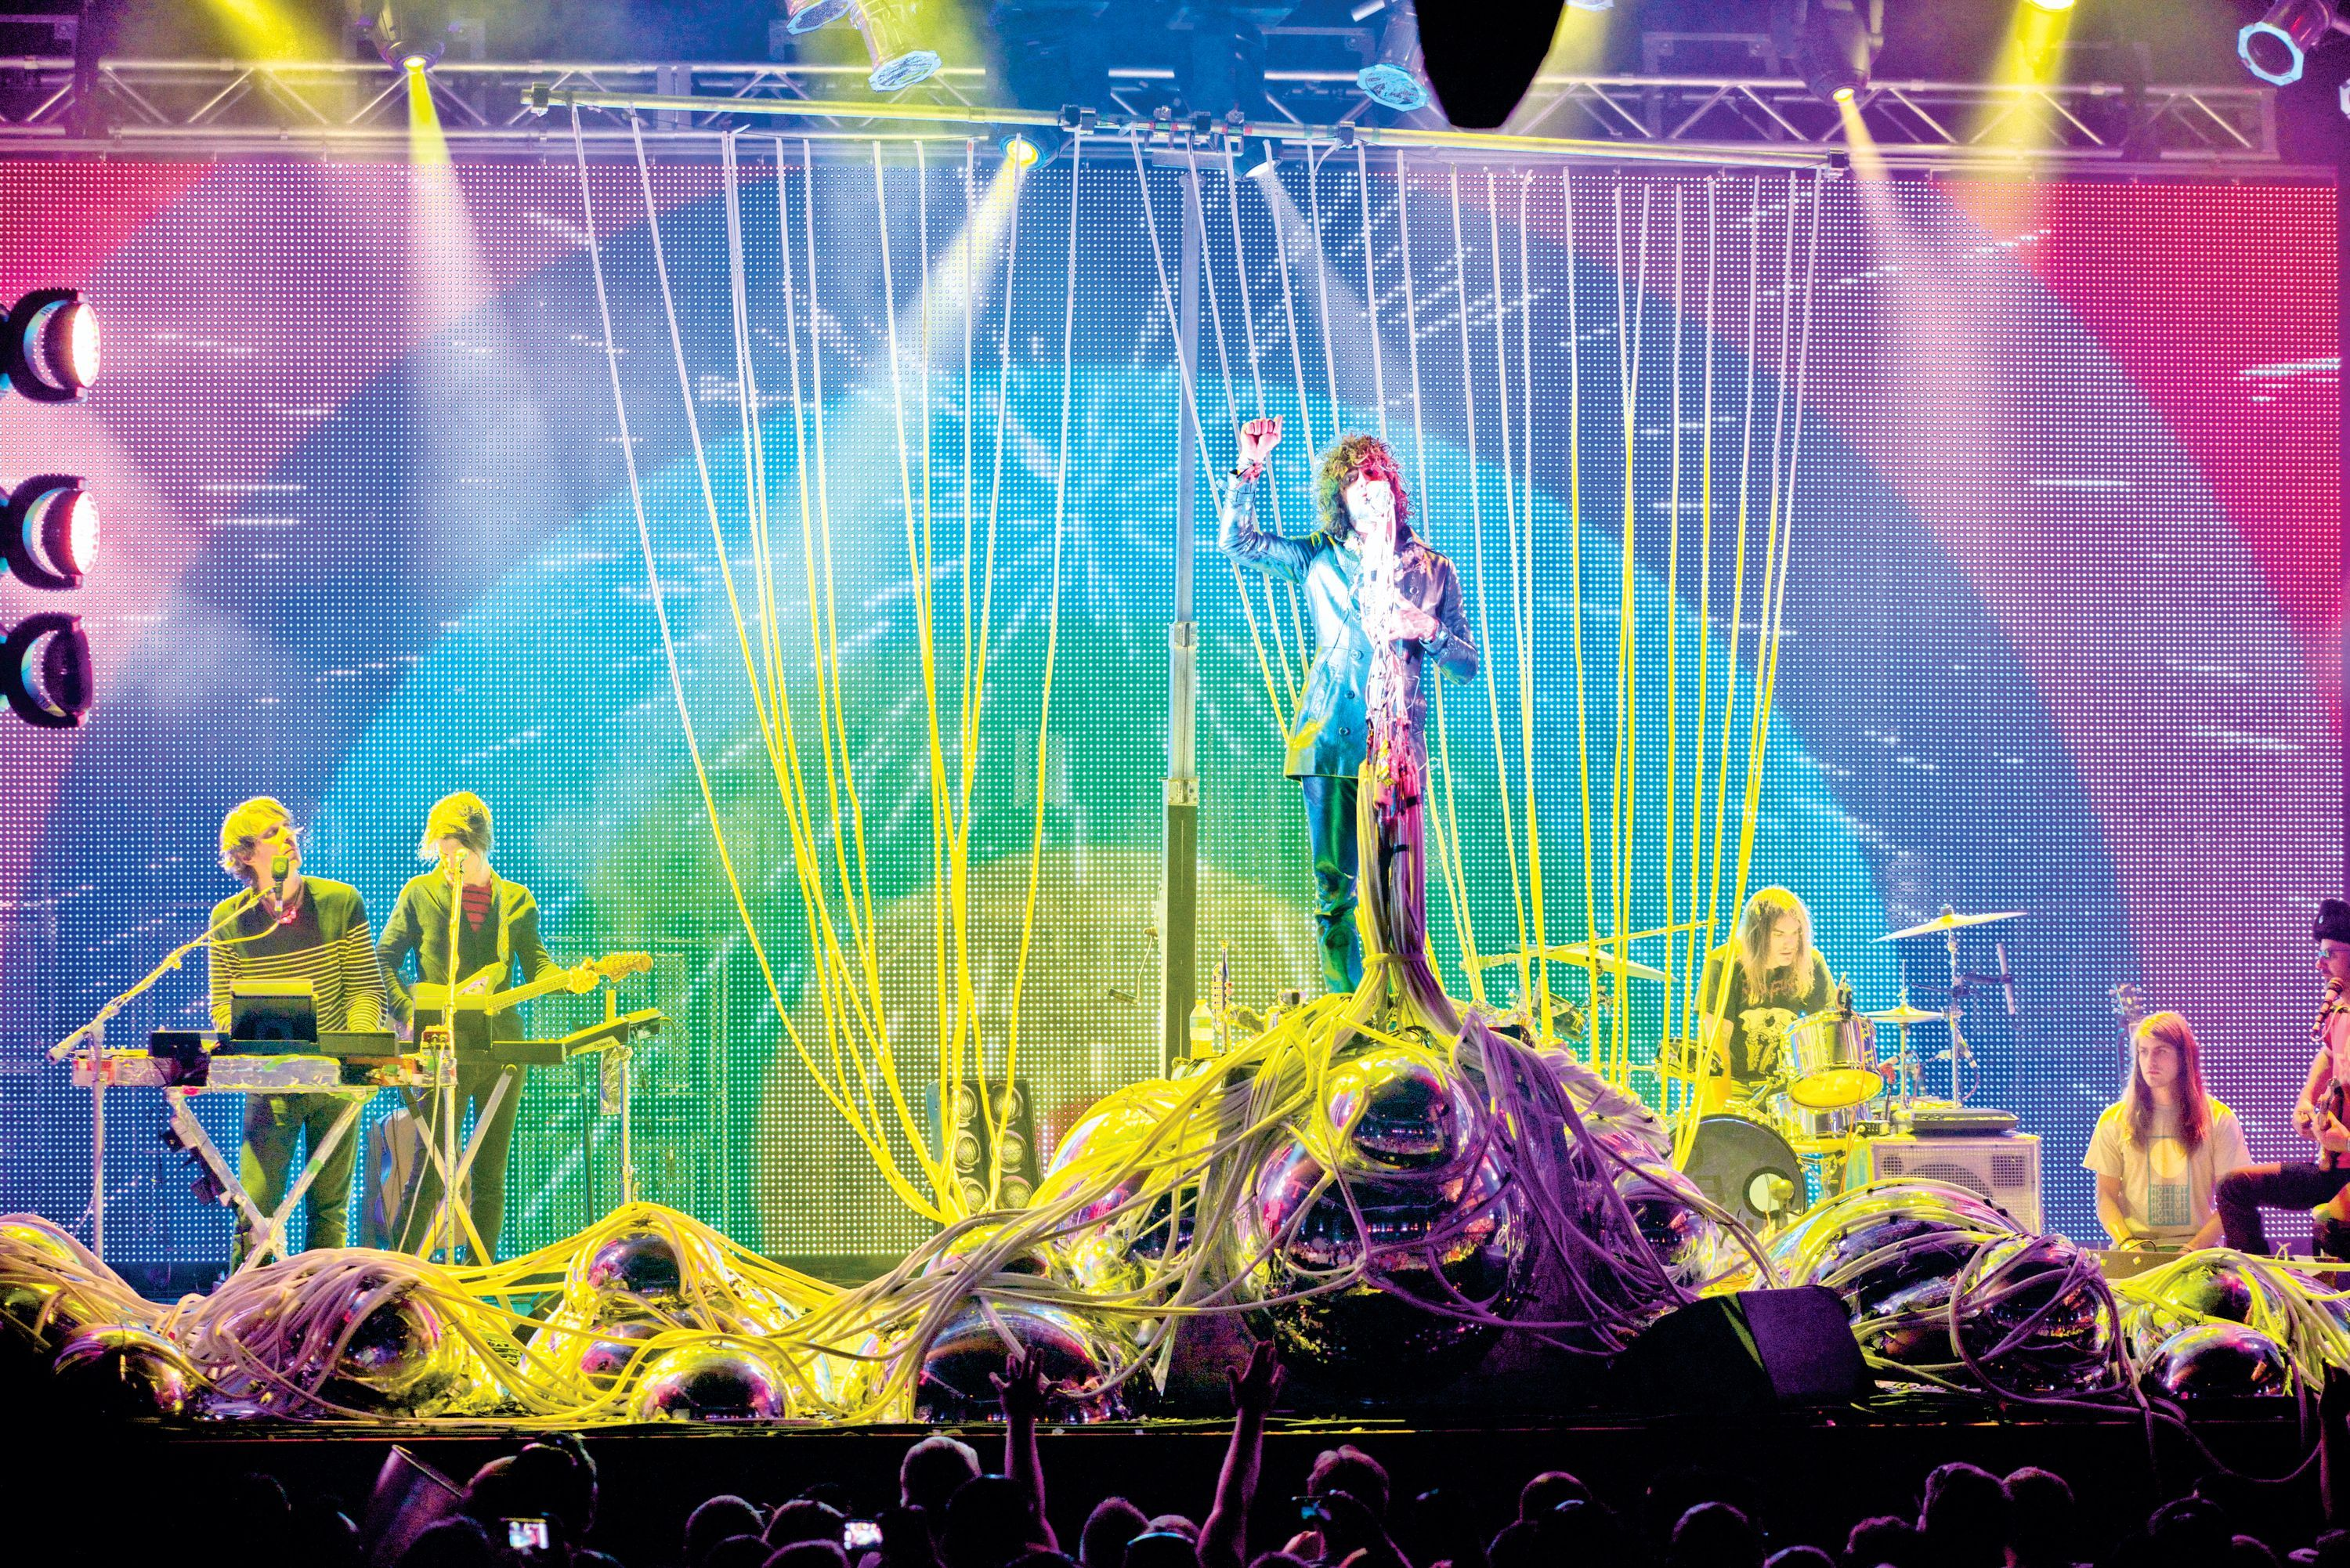 The Flaming Lips live in front of LED wall.